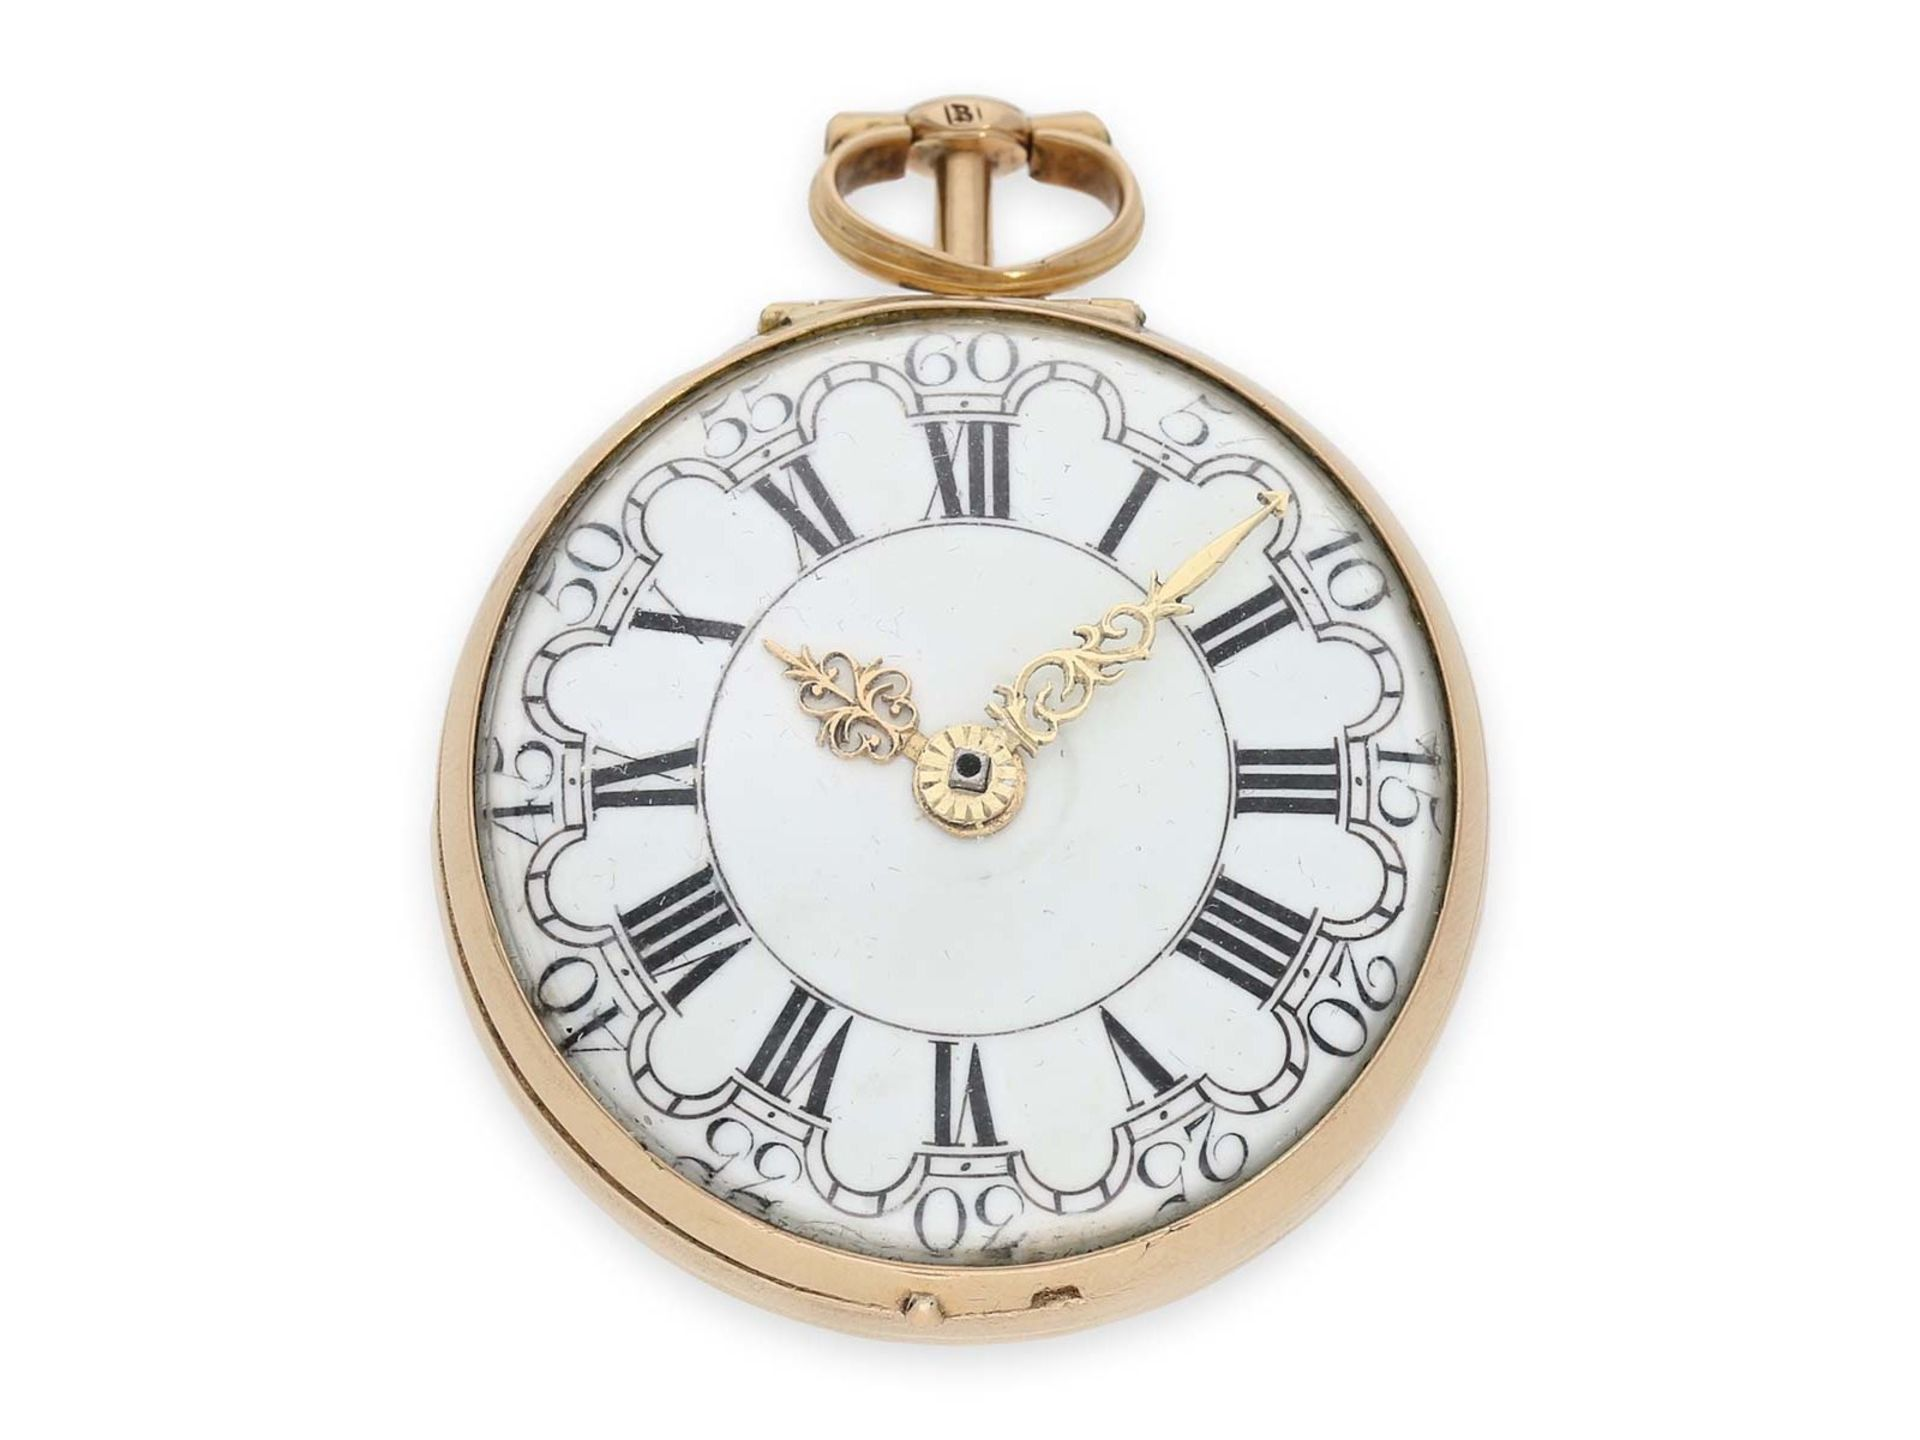 Pocket watch: early triple case gold repousse verge watch, signed Rose London, ca. 1770 - Bild 3 aus 8